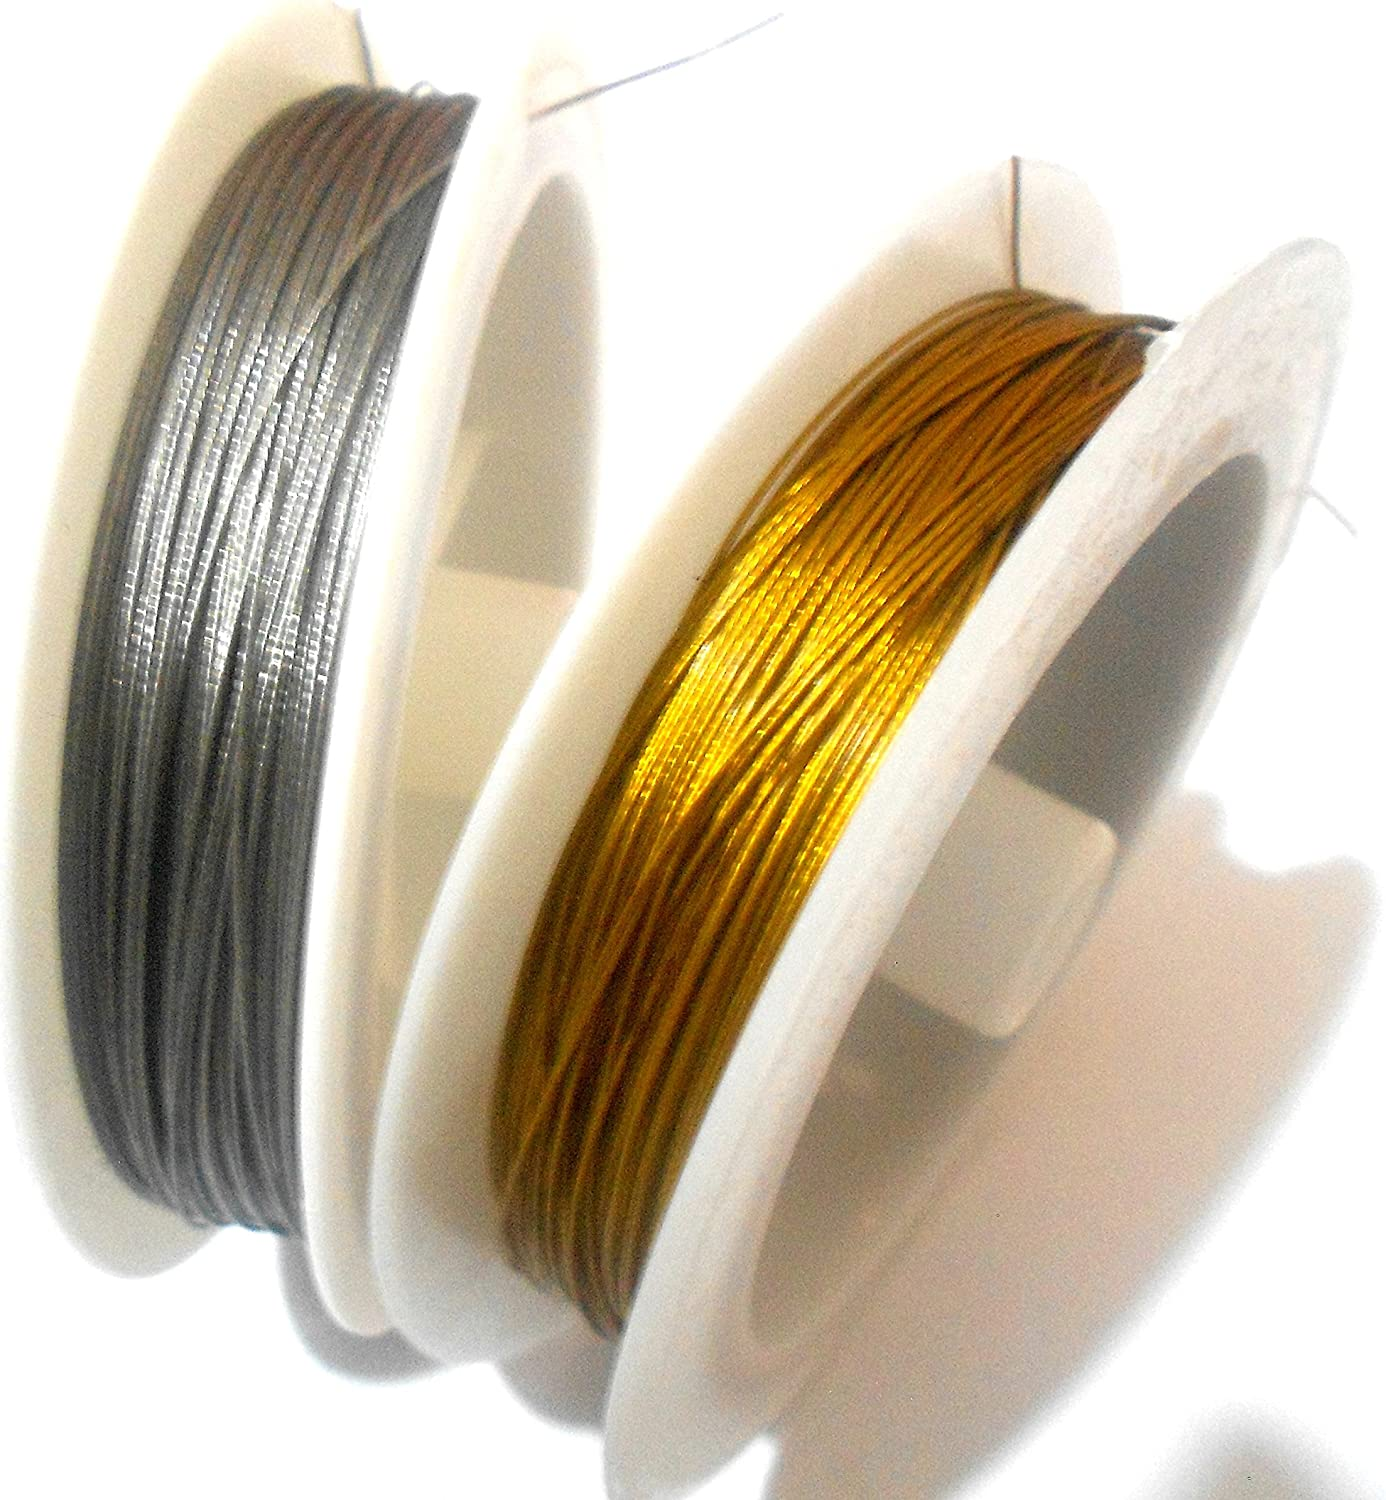 1 x 10m Steel Gold Tiger Tail Beading Wire 0.45mm Craft Jewellery Making